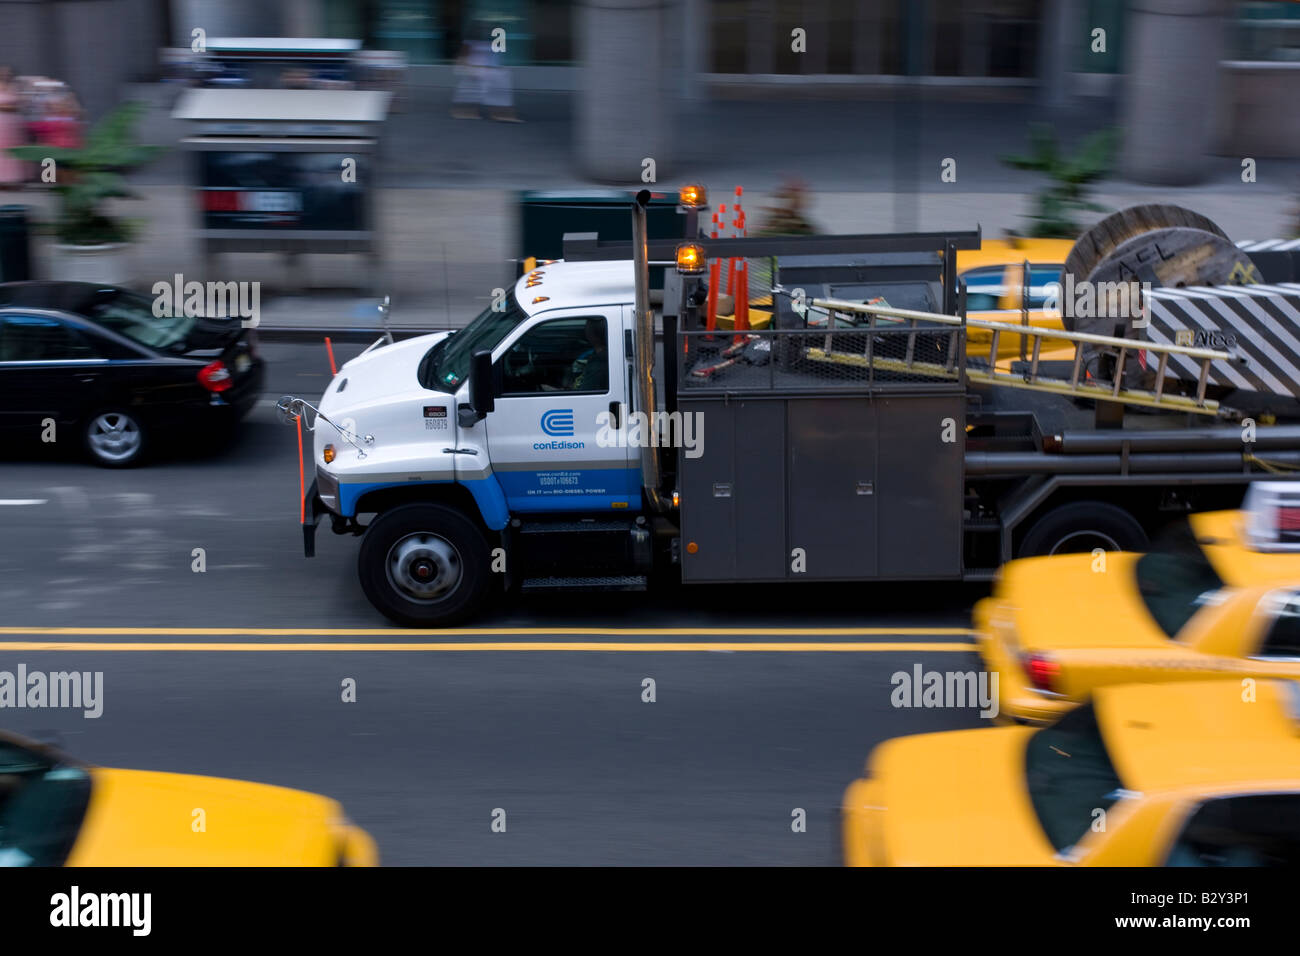 A Consolidated Edison heavy truck navigates through midtown traffic on the way to a work site. - Stock Image